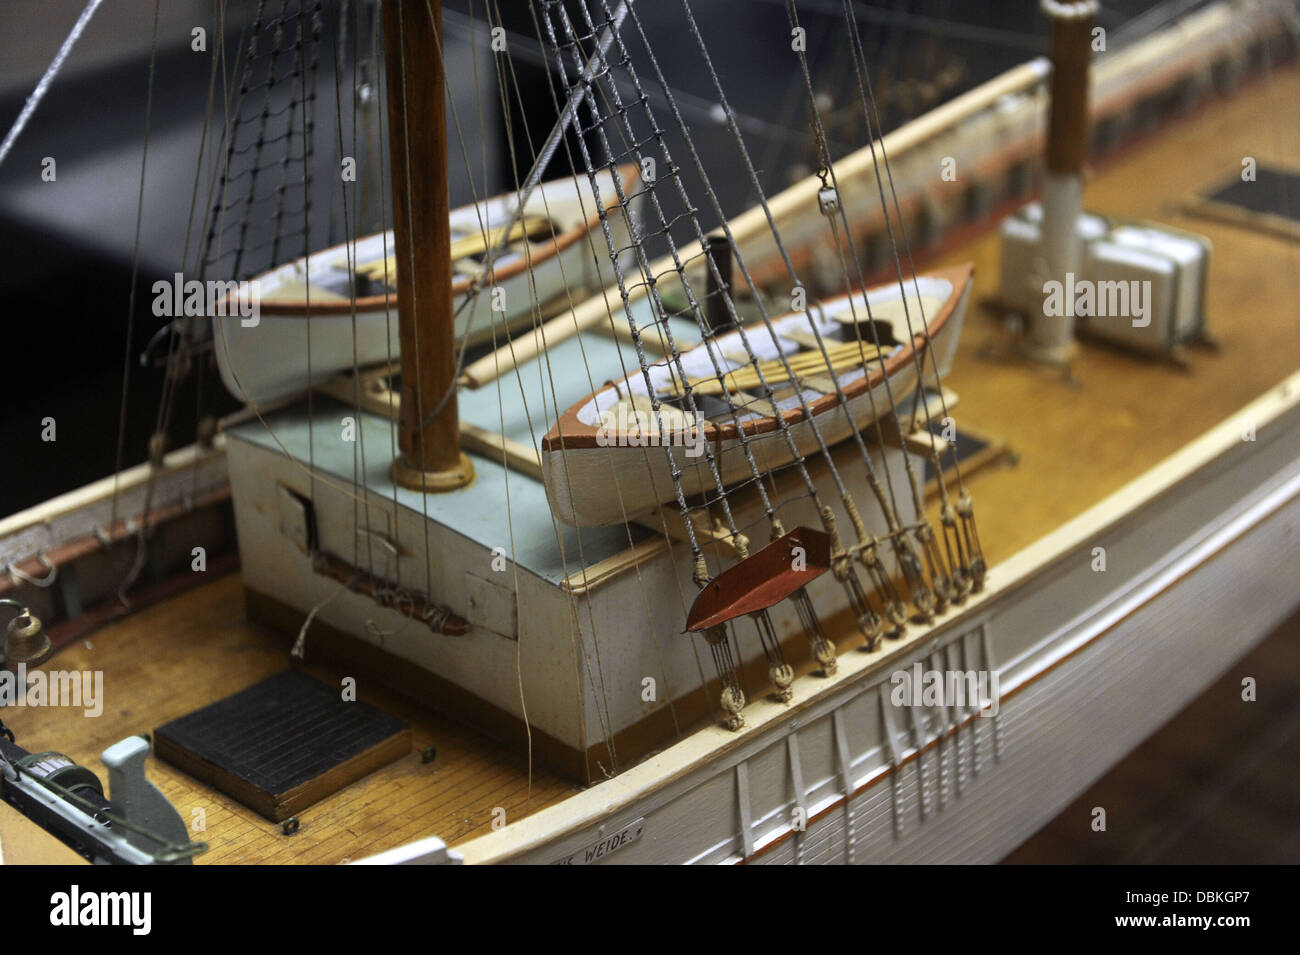 Andreas Weide Brigantine, 1881. Model by A. Bernhards, 1930. Scala: 1:25. Museum of History and Navigation. Riga. - Stock Image